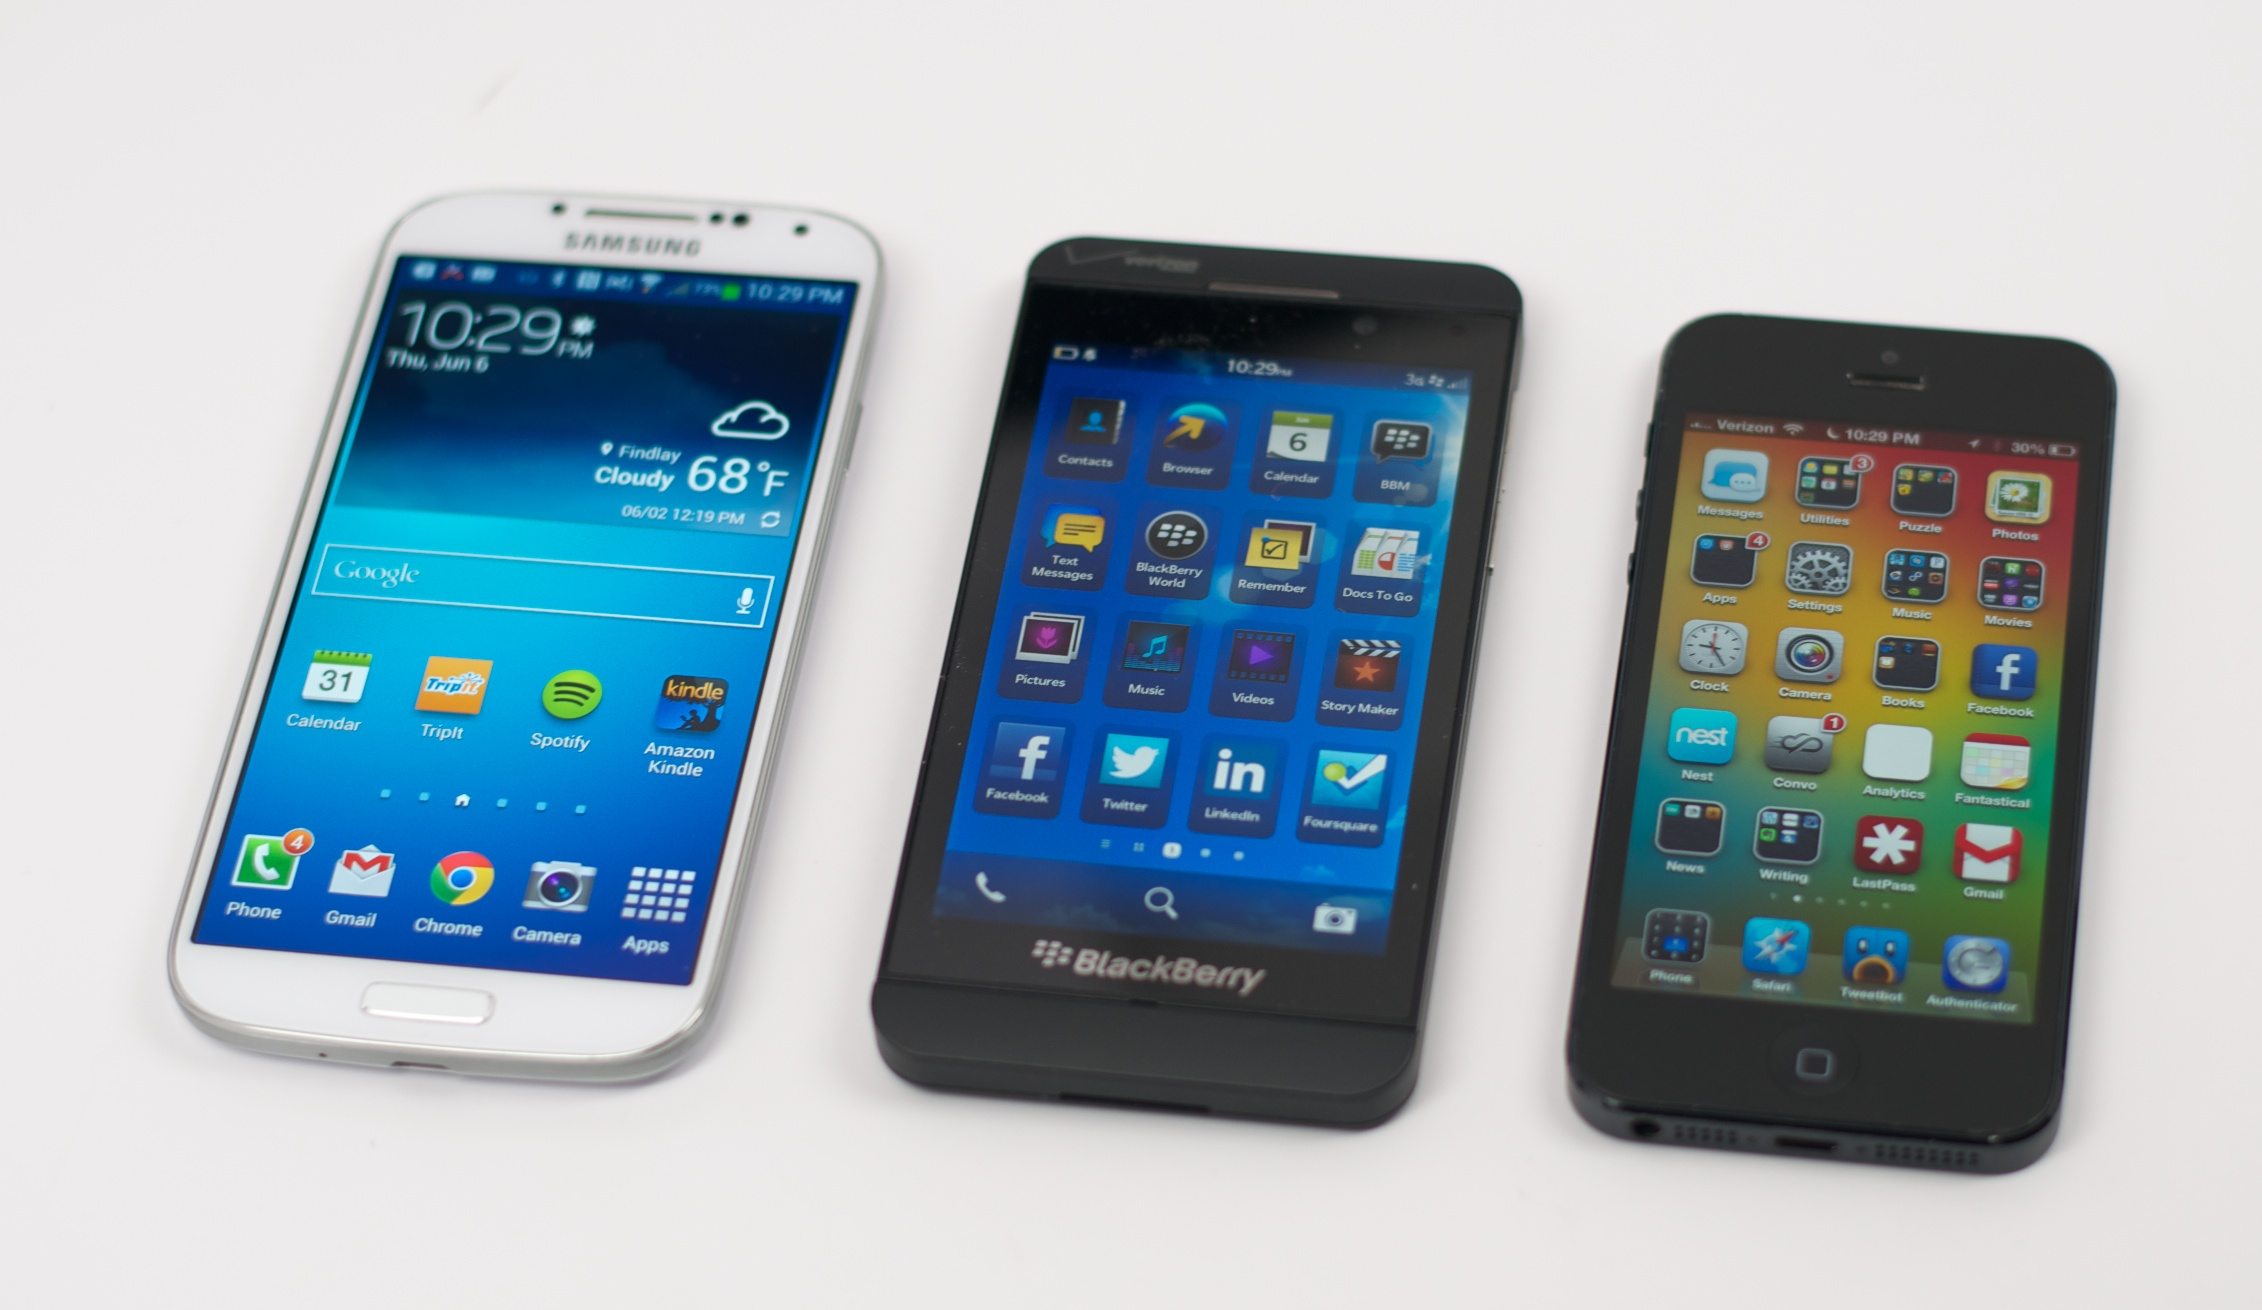 The Blackberry Z10 Display Does Boast A High Pixelperinch Ratio Of 356,  Which Translates Into How To Add And Delete